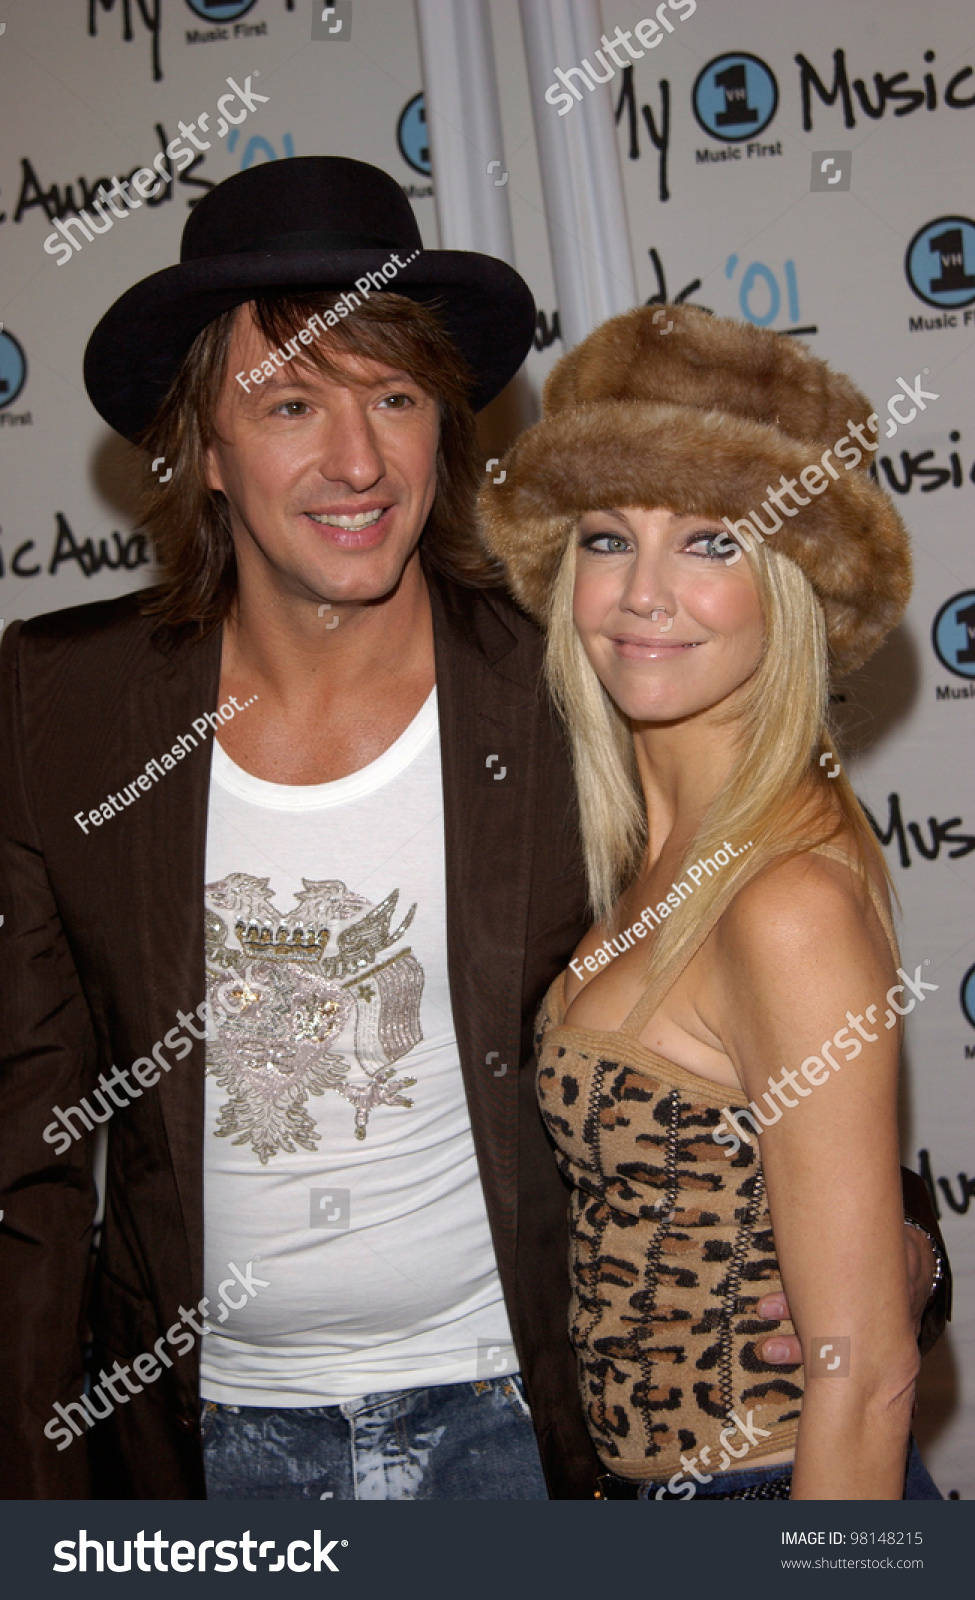 Was locklear to married heather who Heather Locklear